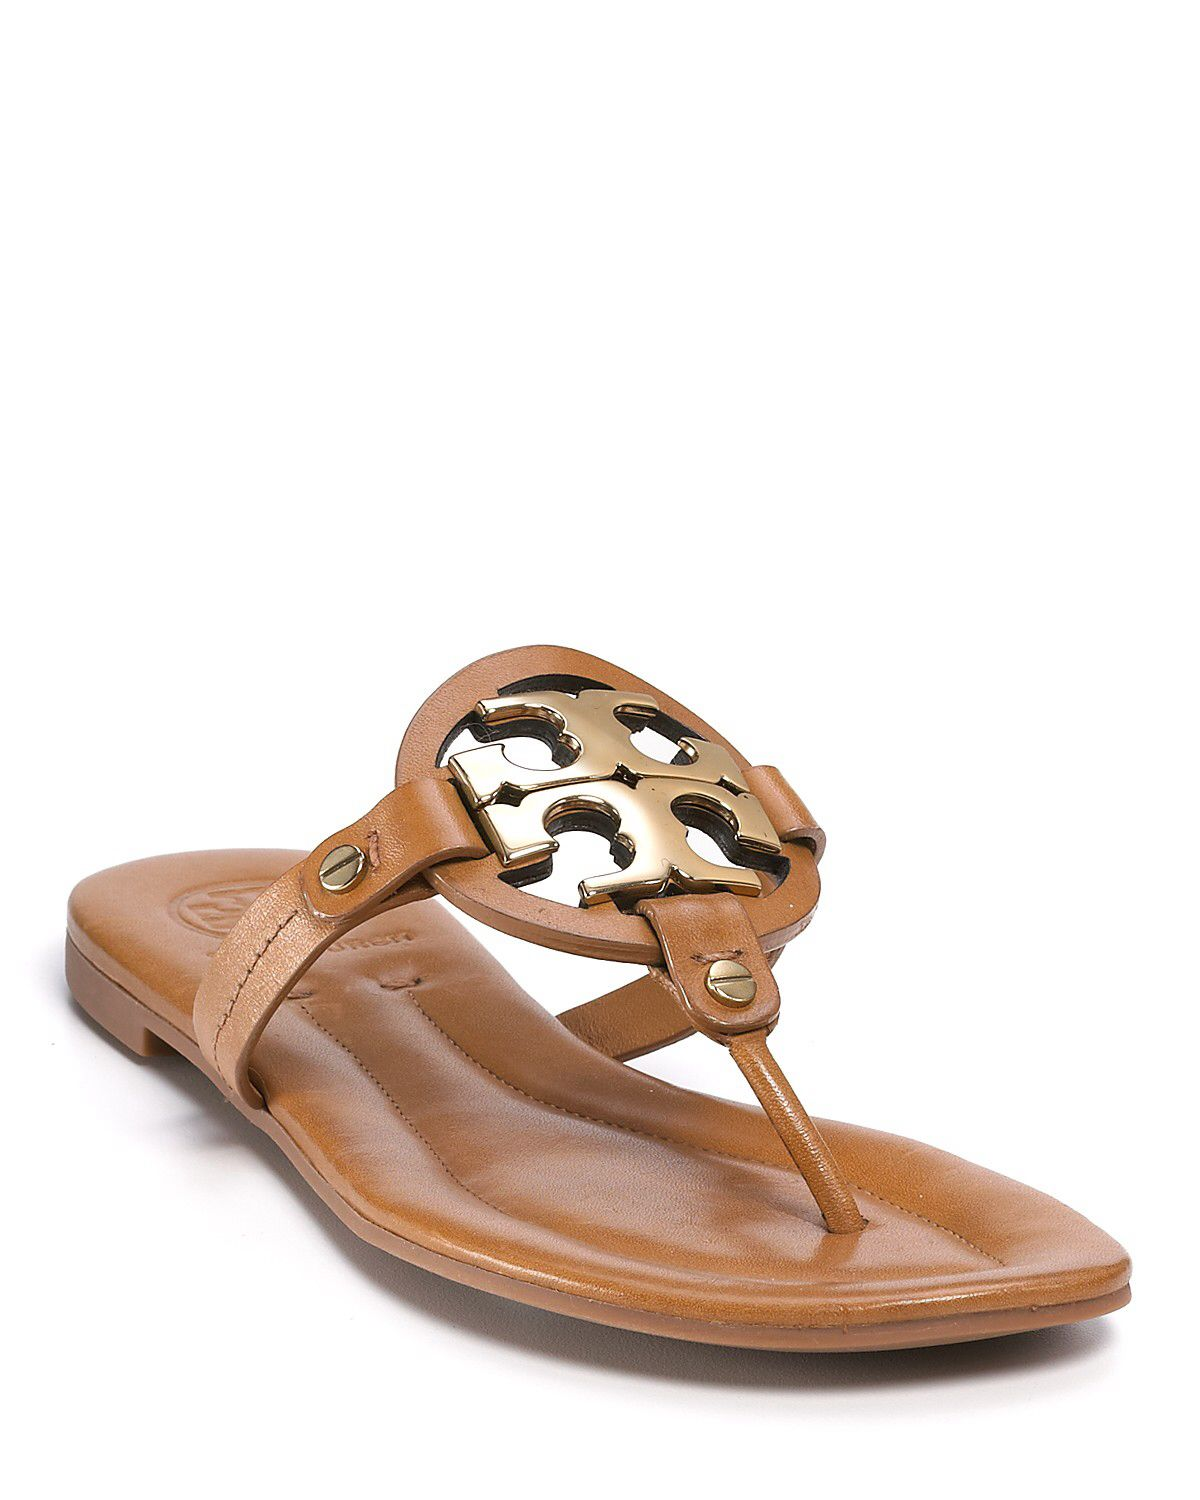 31a0cfad2 Tory burch flats. Have wanted these for so long!